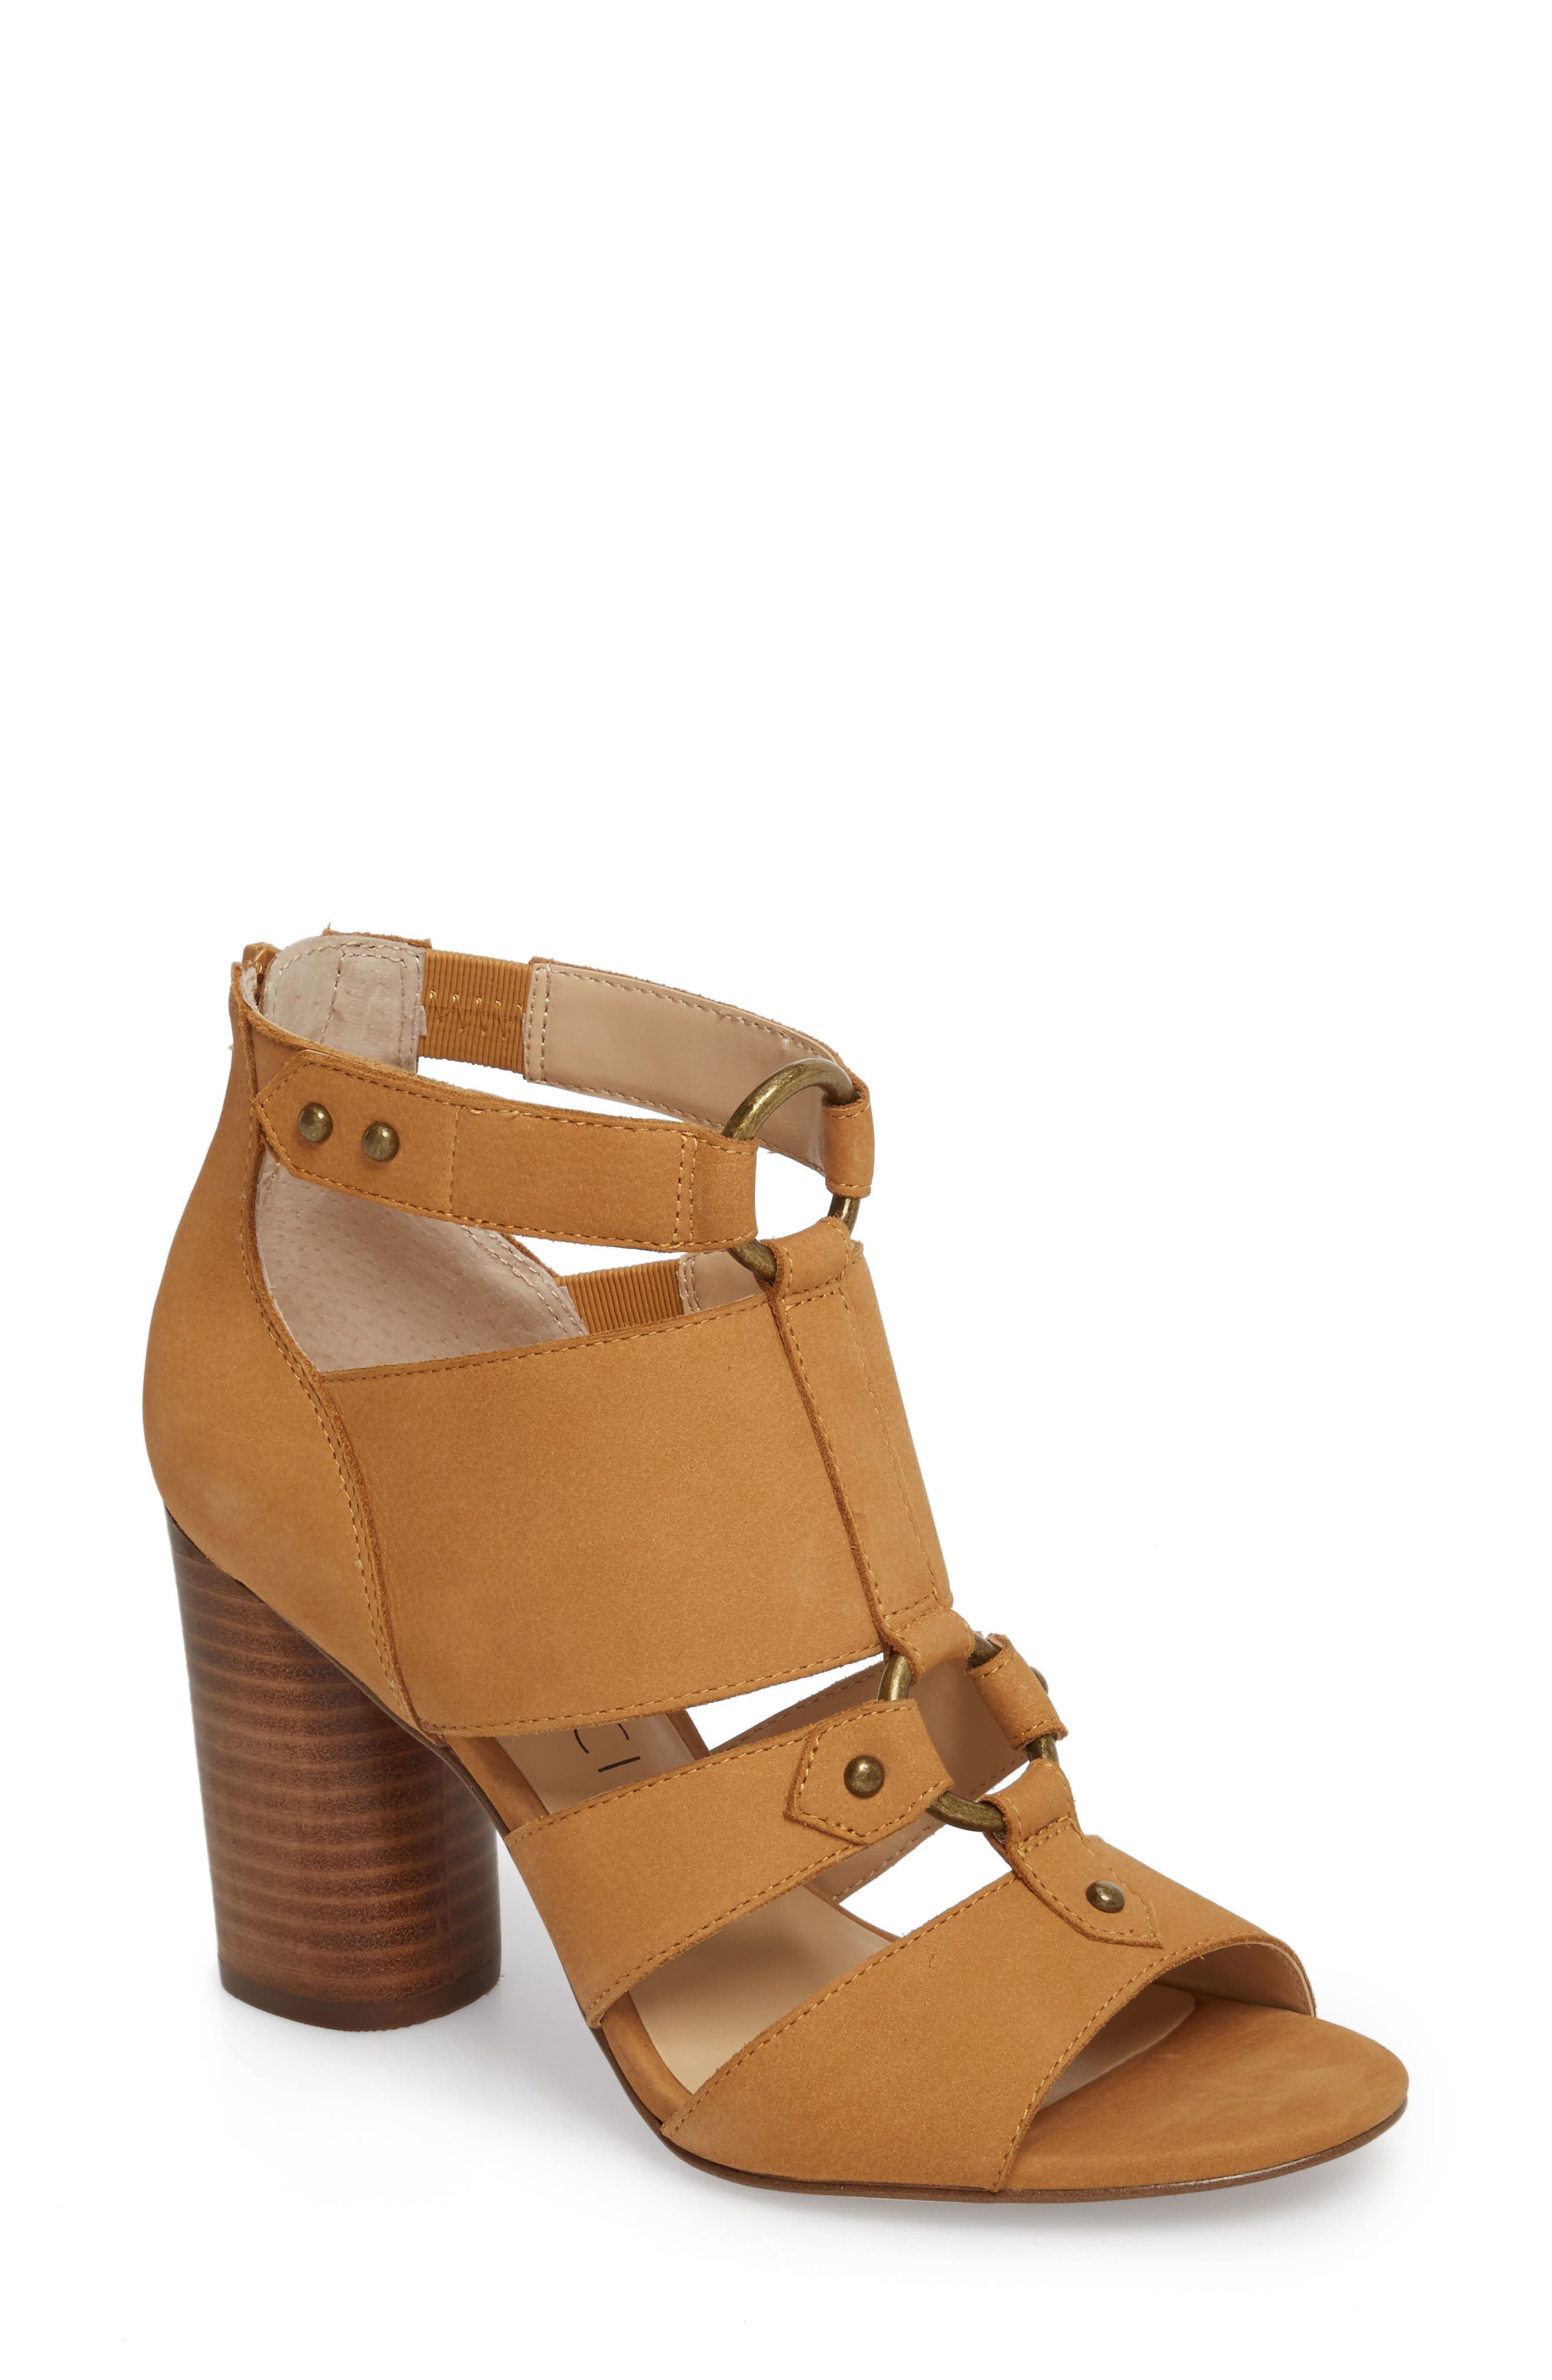 Sole Society Sadey Cage Sandal, Brown